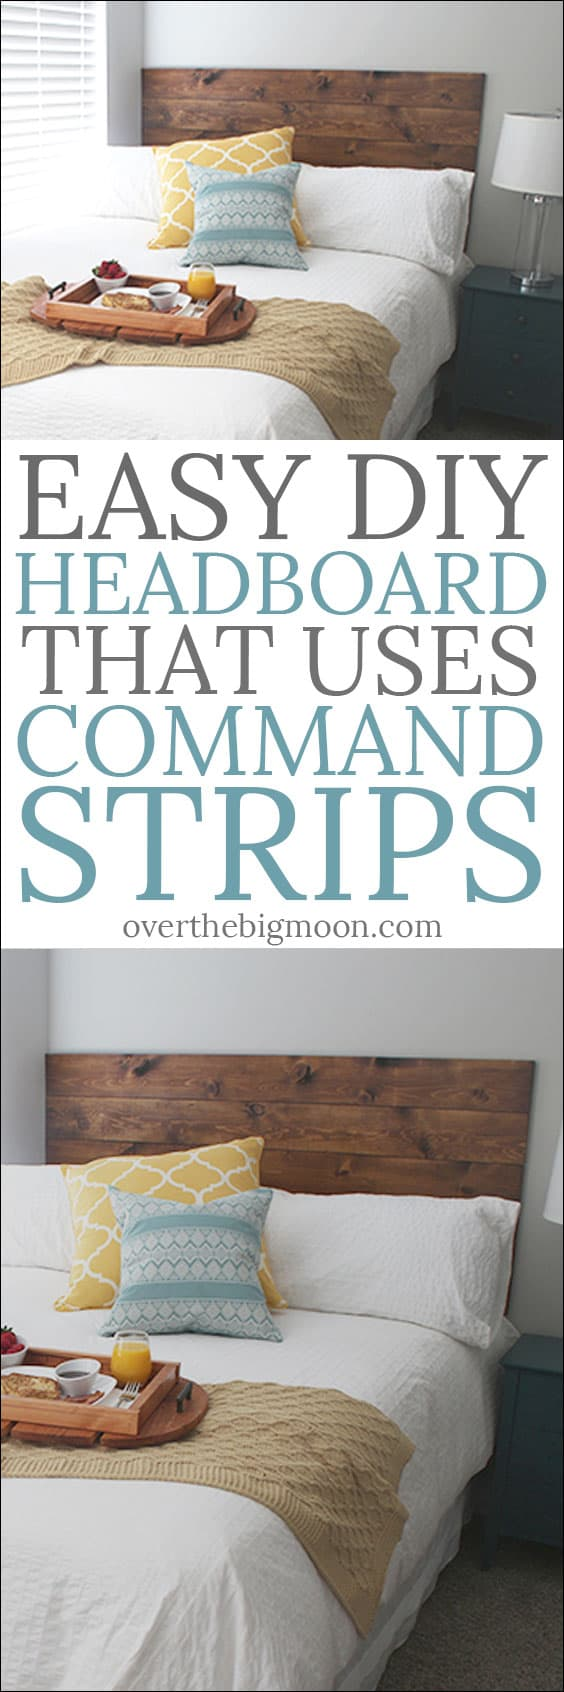 Easy DIY Headboard that uses Command Strips to hang it! This is perfect for renters or kids rooms!! From overthebigmoon.com!